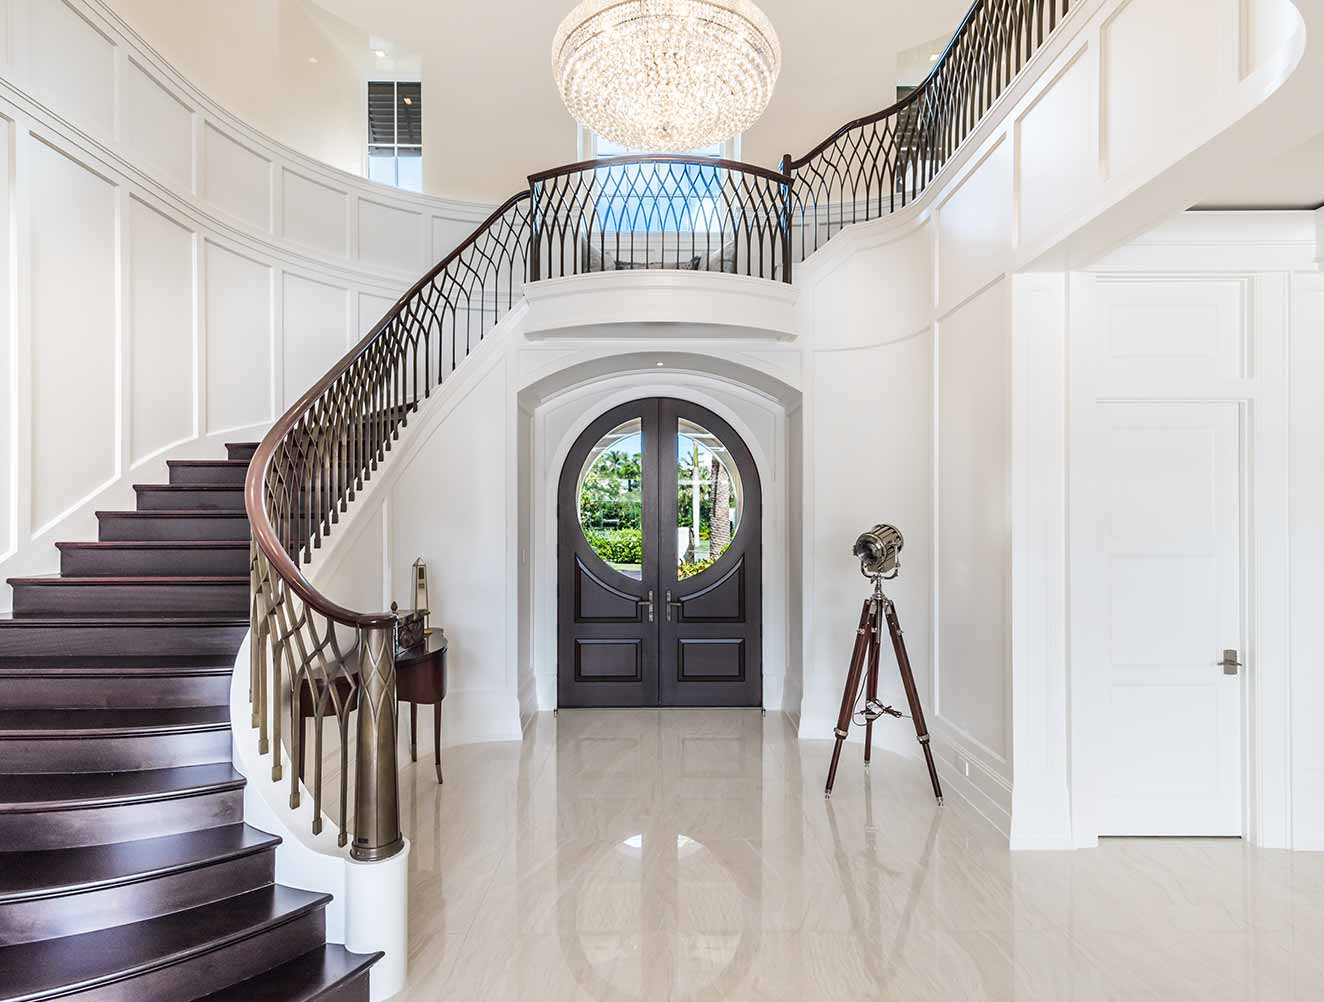 Portfolio of Custom Staircase Design in Naples, Florida Luxury Homes. Modern wood staircase with metal railing details. Designed by Kukk Architecture & Design Naples.